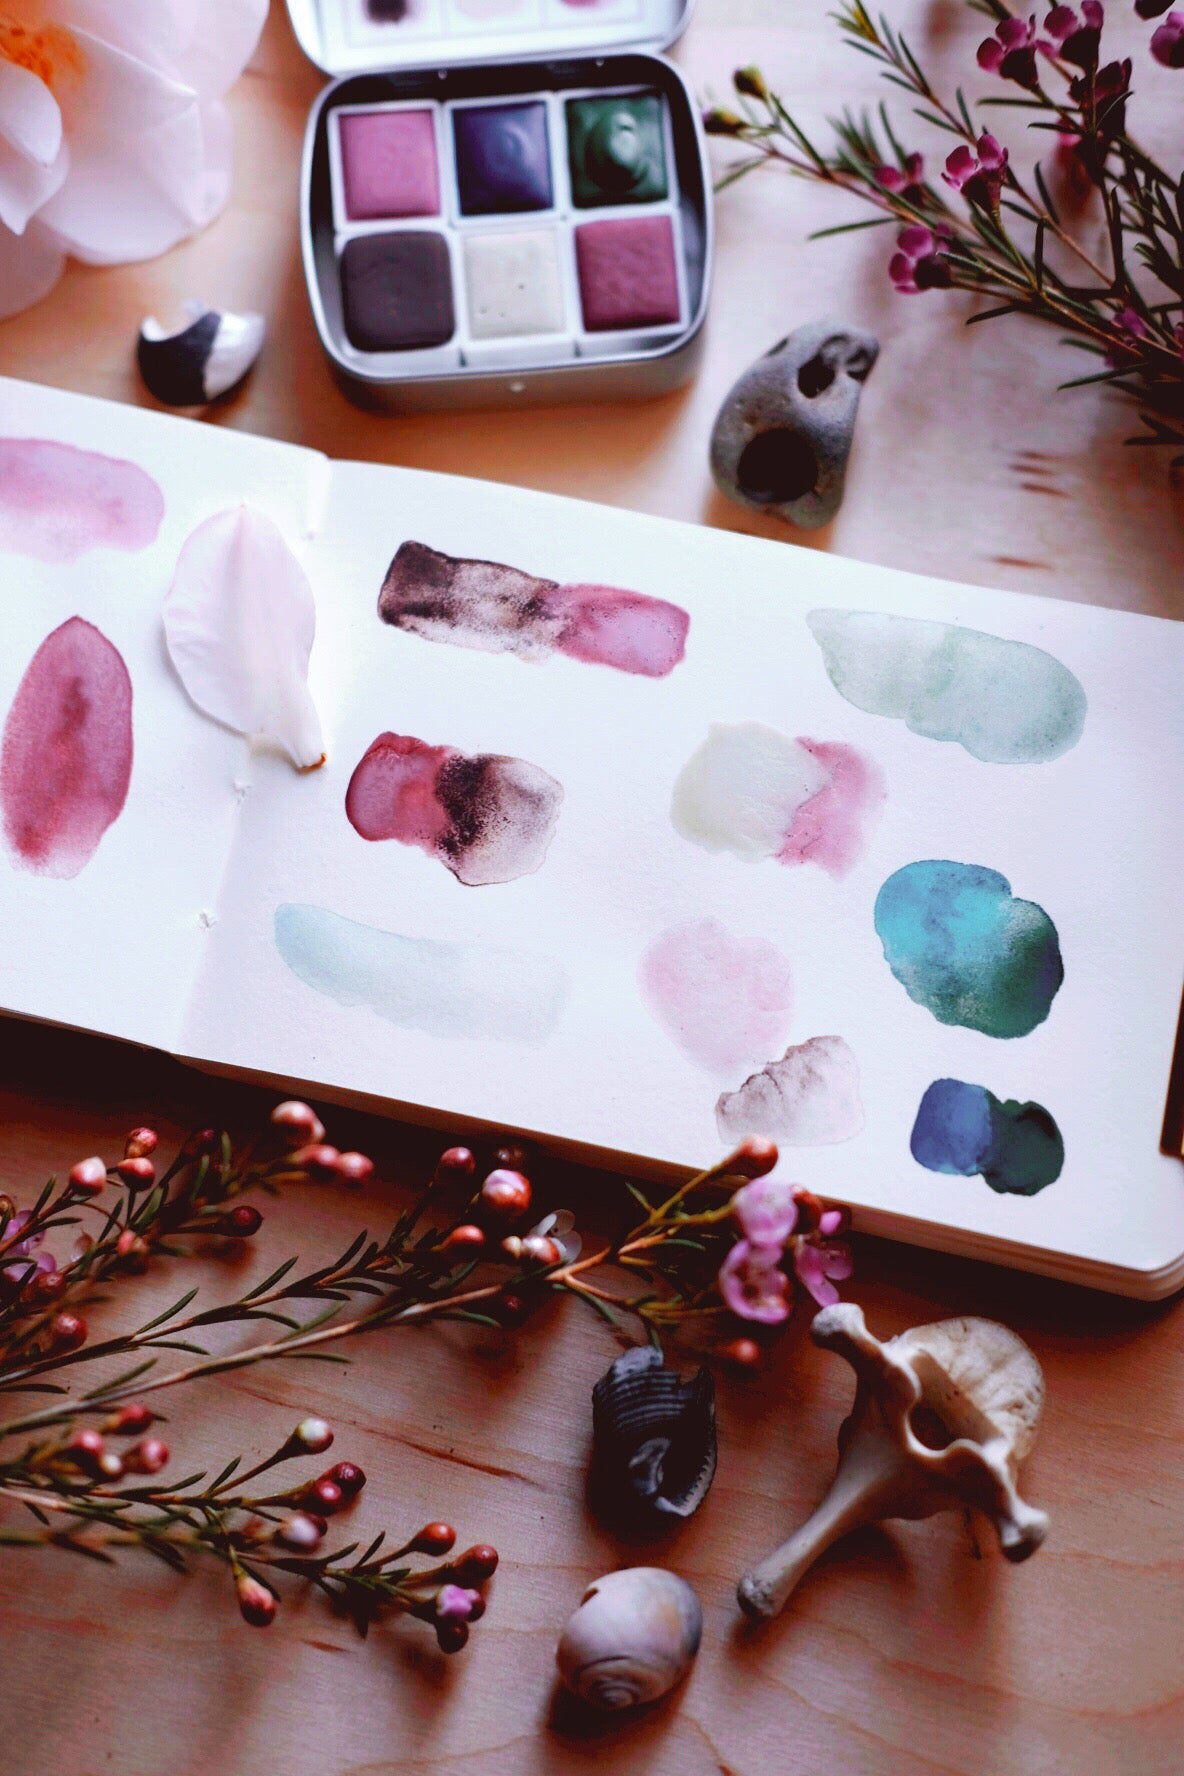 RESERVE for Kerri + Seashell Floret - Limited edition Gemstone Mineral watercolor palette